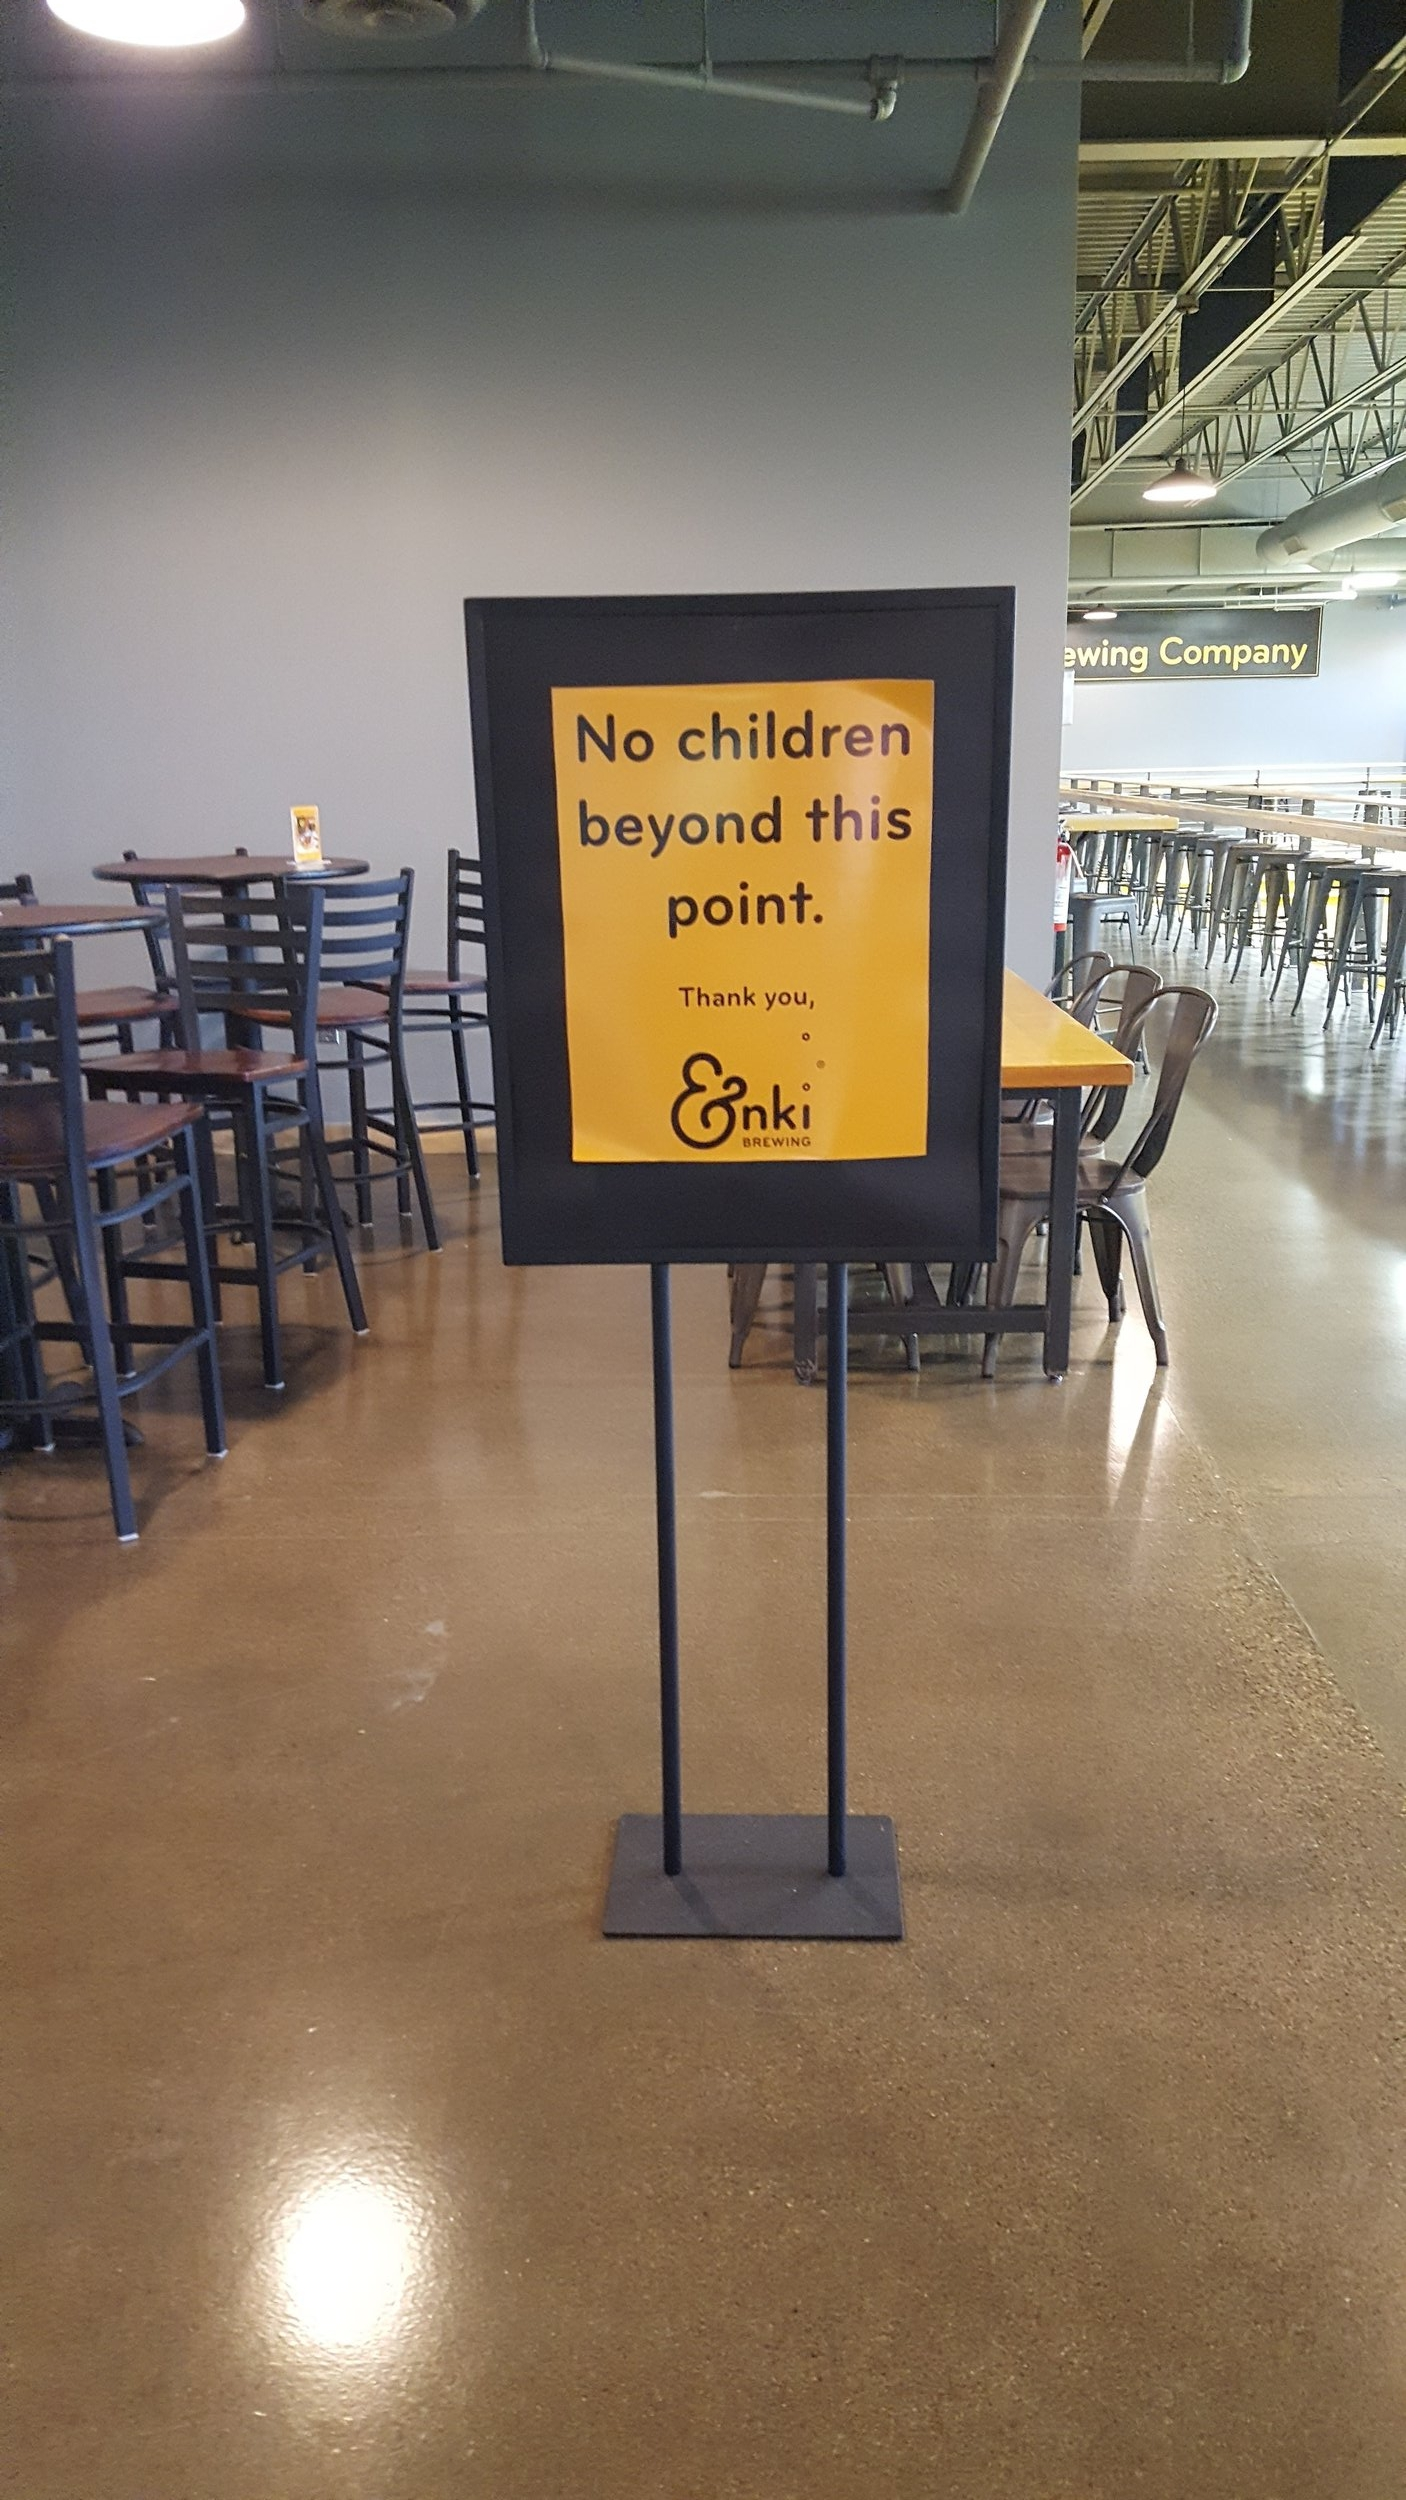 I realize this is probably because the brewing facility is right there, but sometimes it's nice to have a child free zone :)